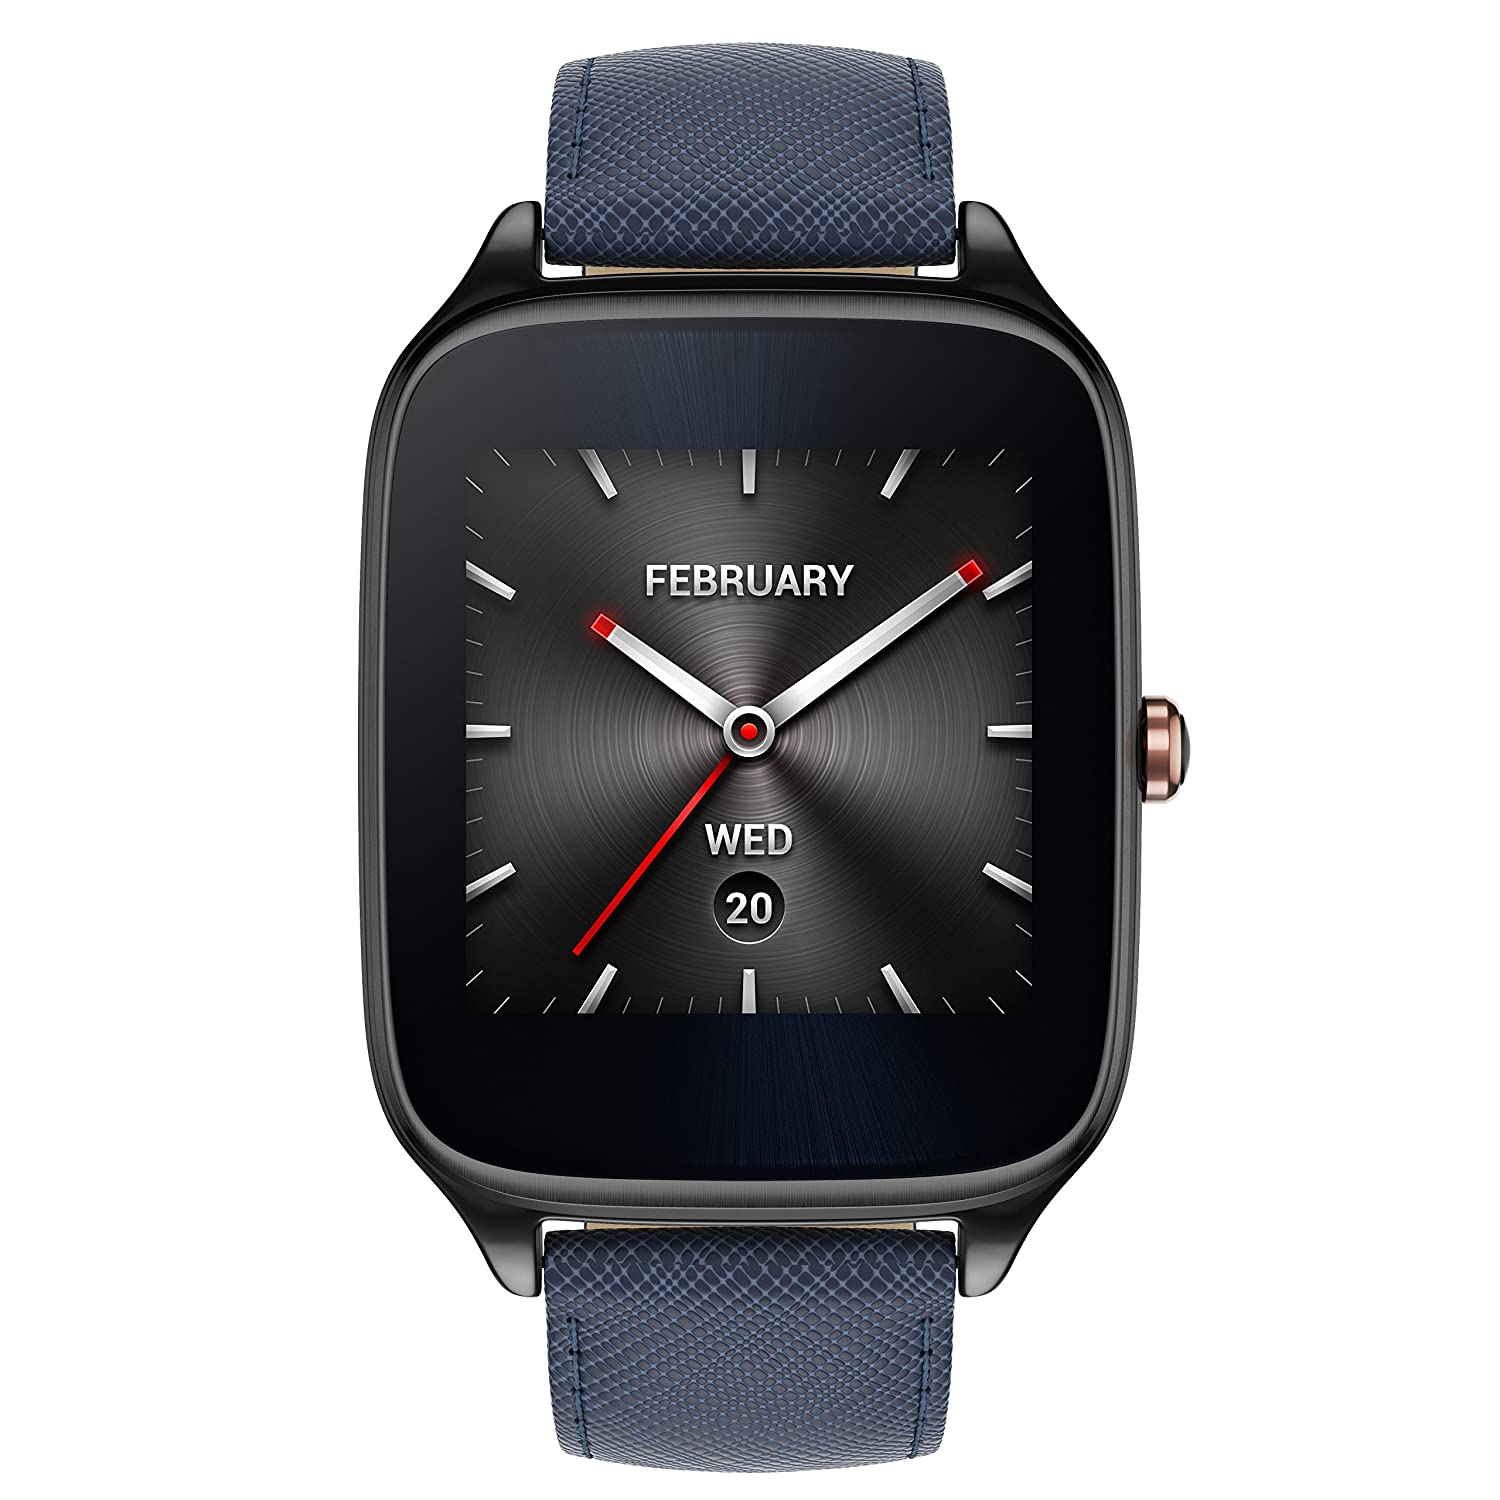 Asus Zenwatch 2 amazon